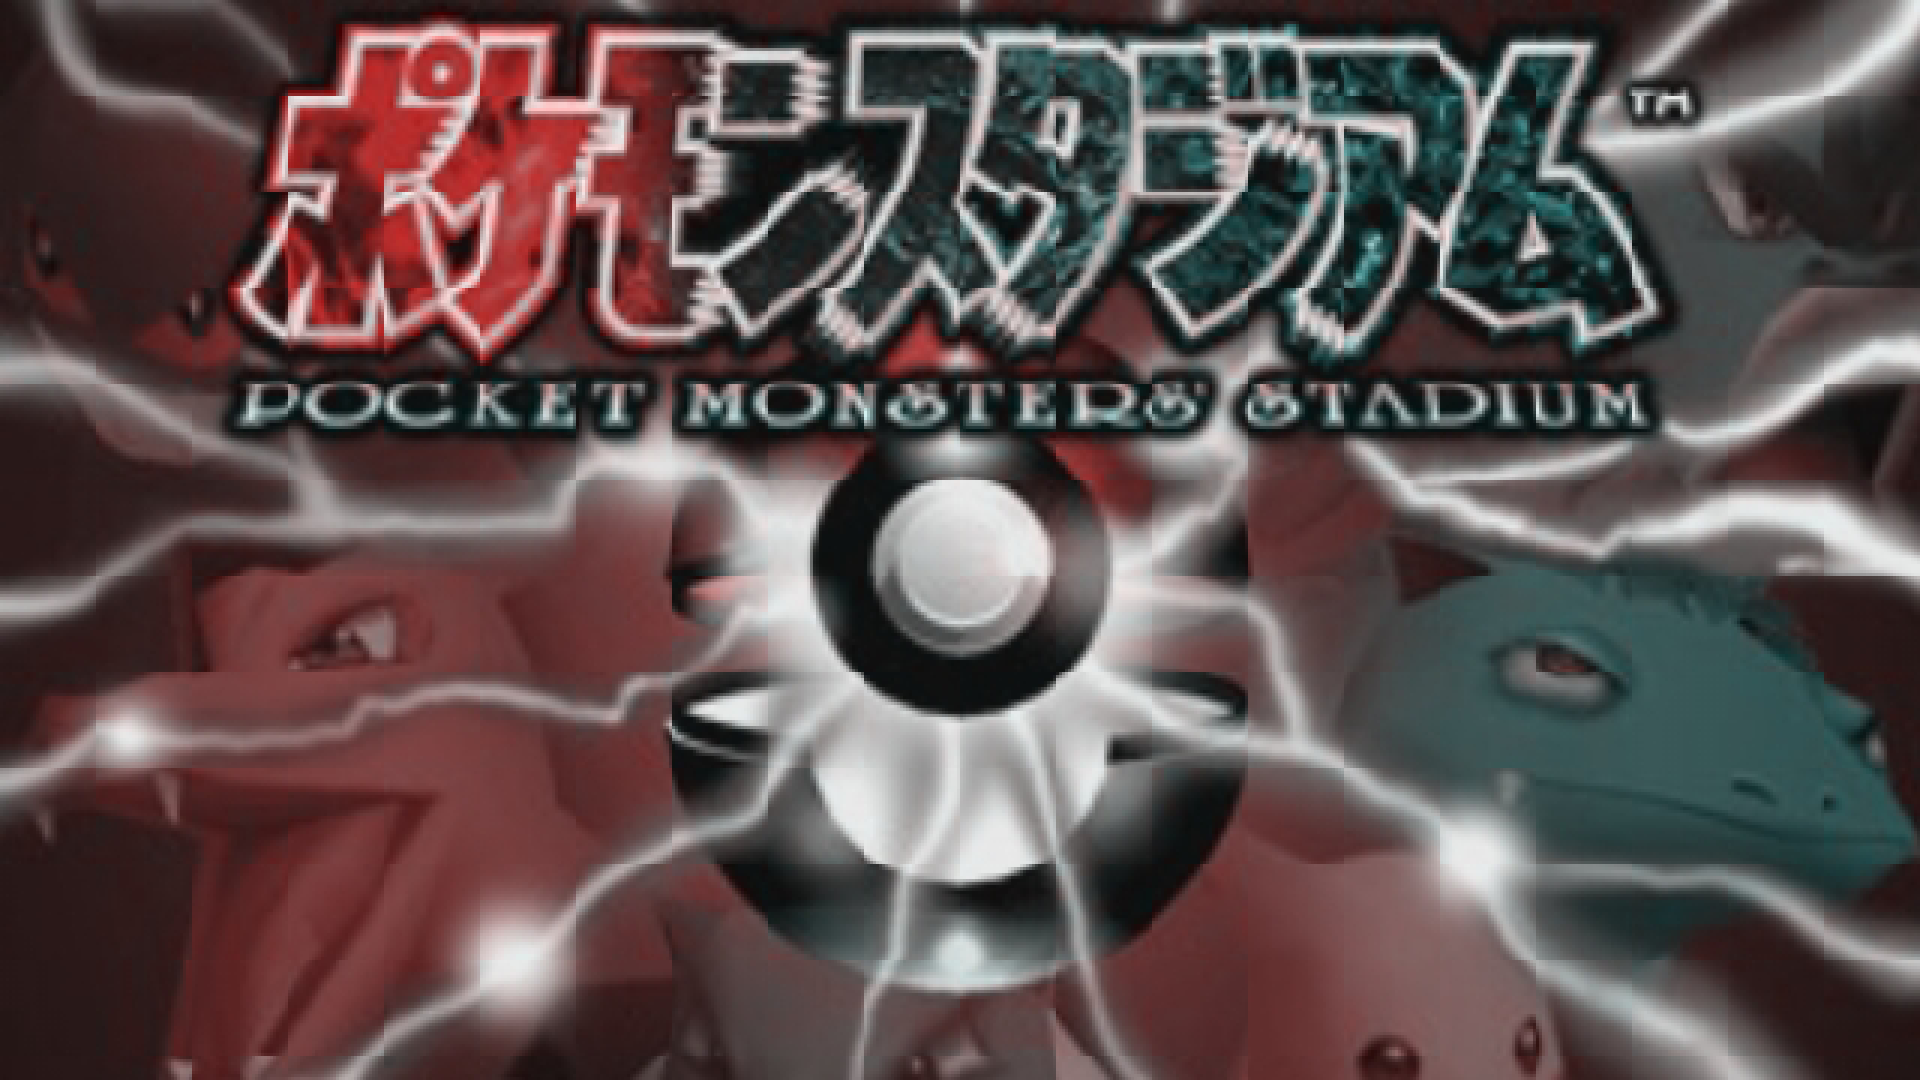 Pocket Monsters Stadium Logo